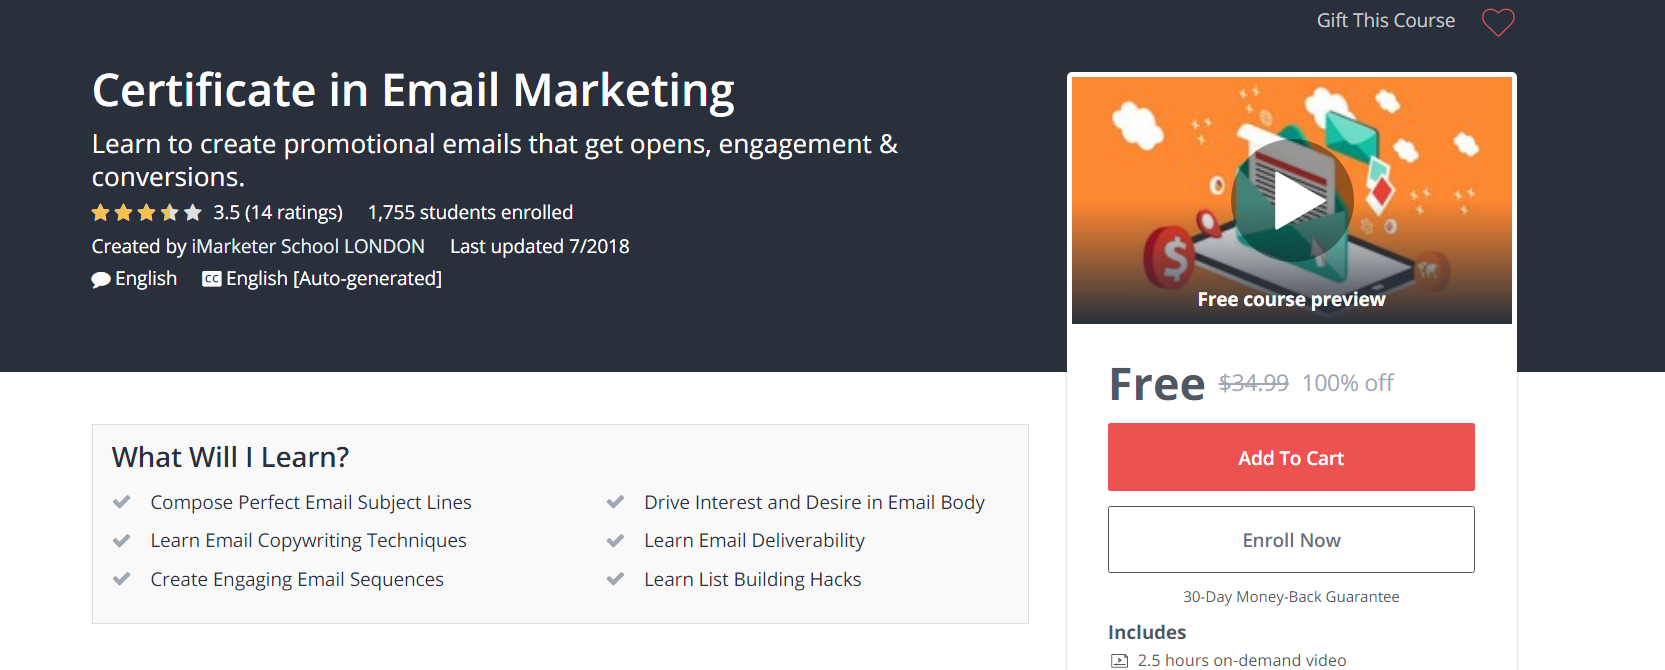 Certificate in #Email #Marketing #udemy #course #free Learn to